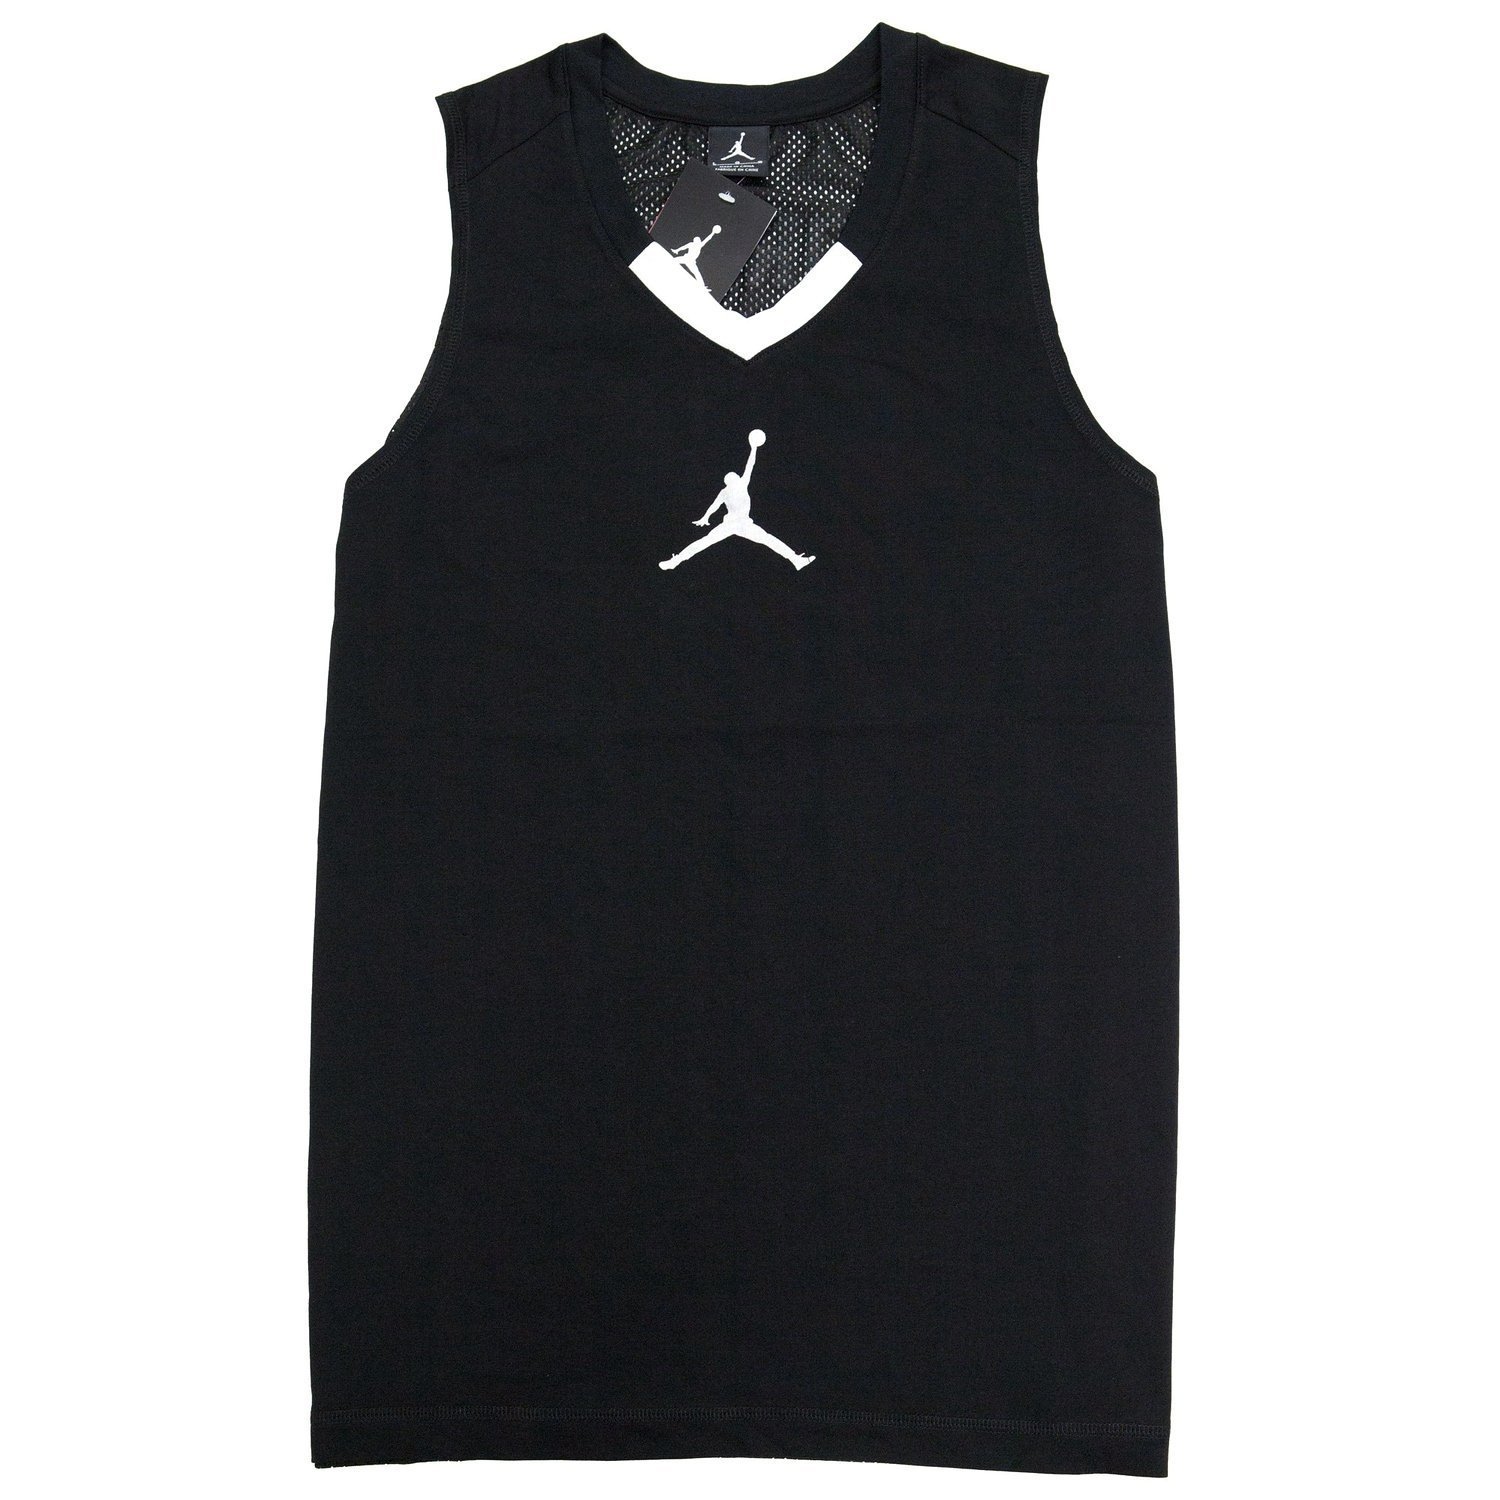 bb9a185ce2a8 Get Quotations · Nike Men s Jordan Rise Jersey 4 Sleeveless Shirt